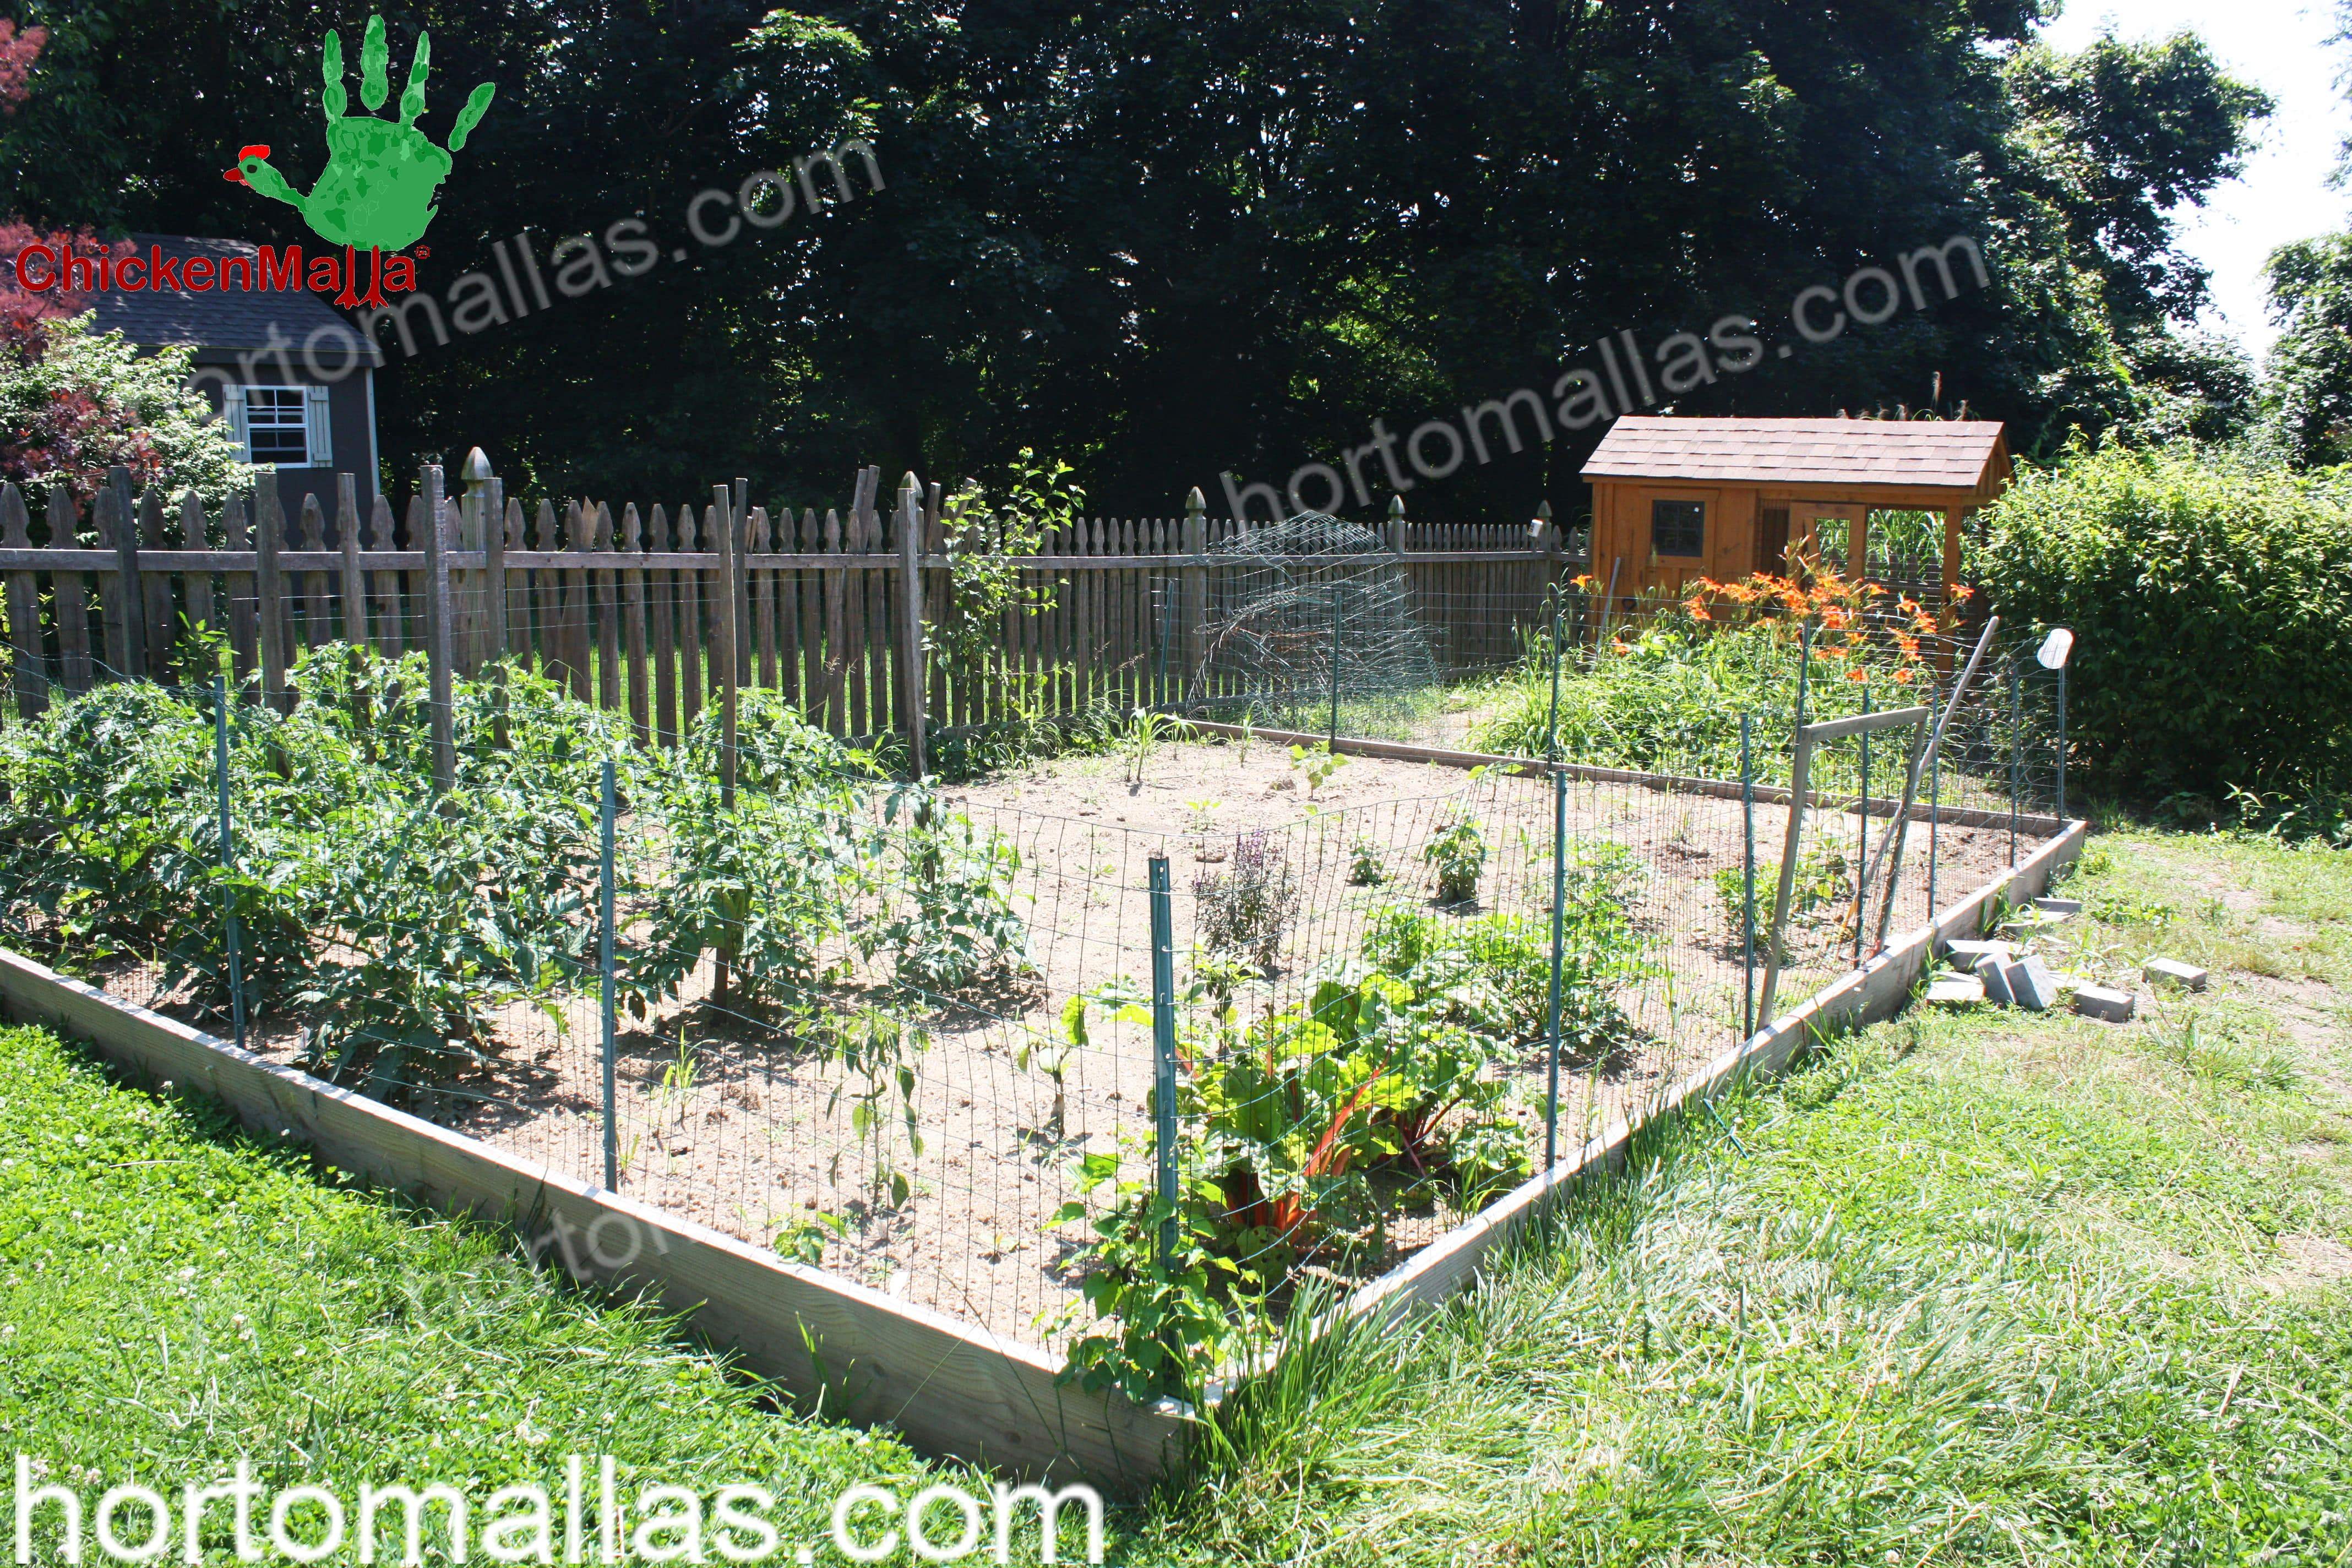 on blogs gardener cfm postdetail posts netting deer original in garden supported stiff blogcore anr the backyard for bird